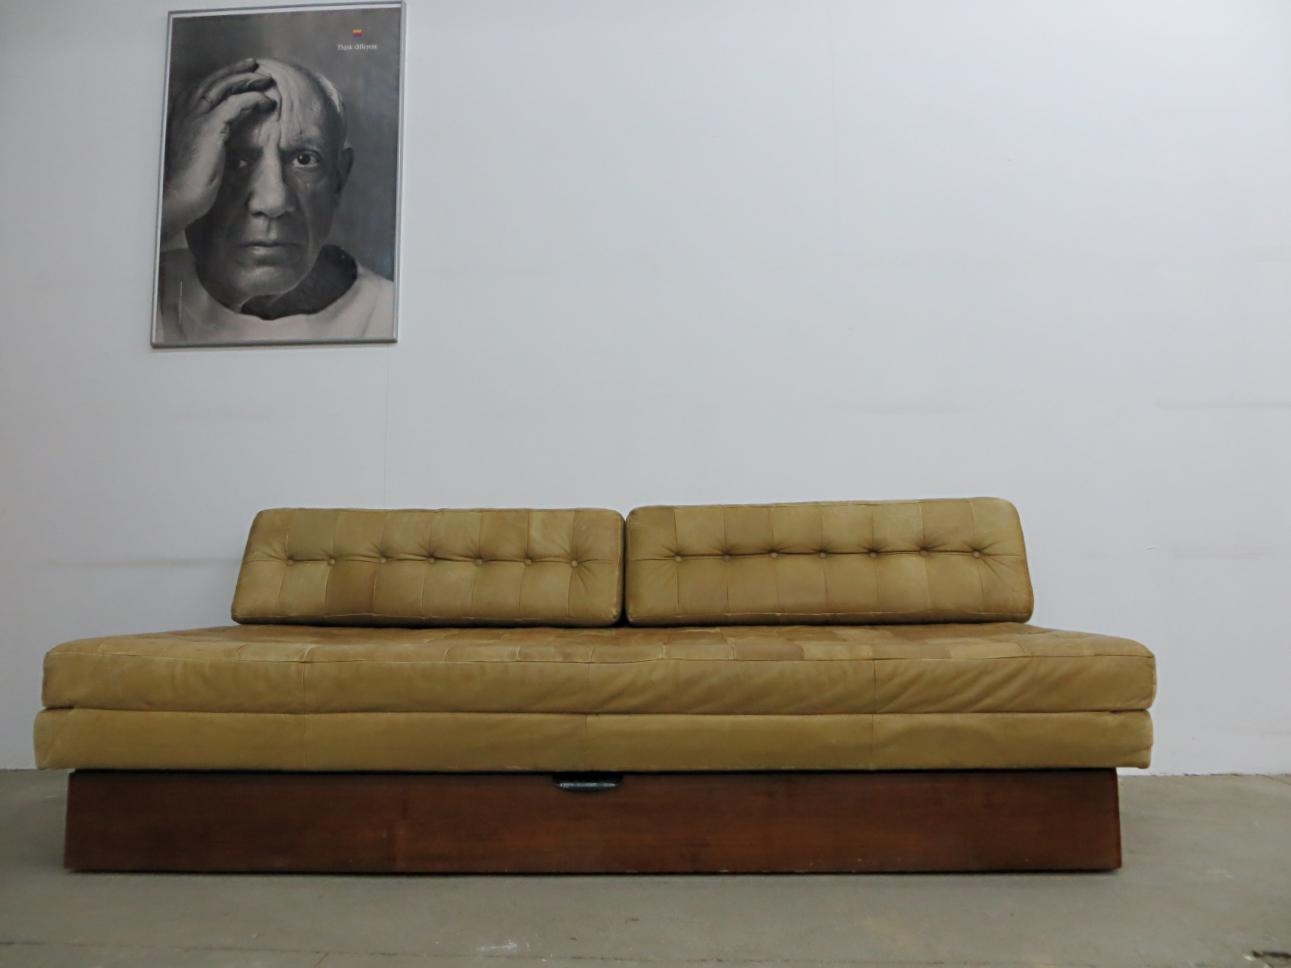 Vintage Leather Sofa Bed For Sale At Pamono Intended For Vintage Leather Sofa Beds (View 7 of 20)